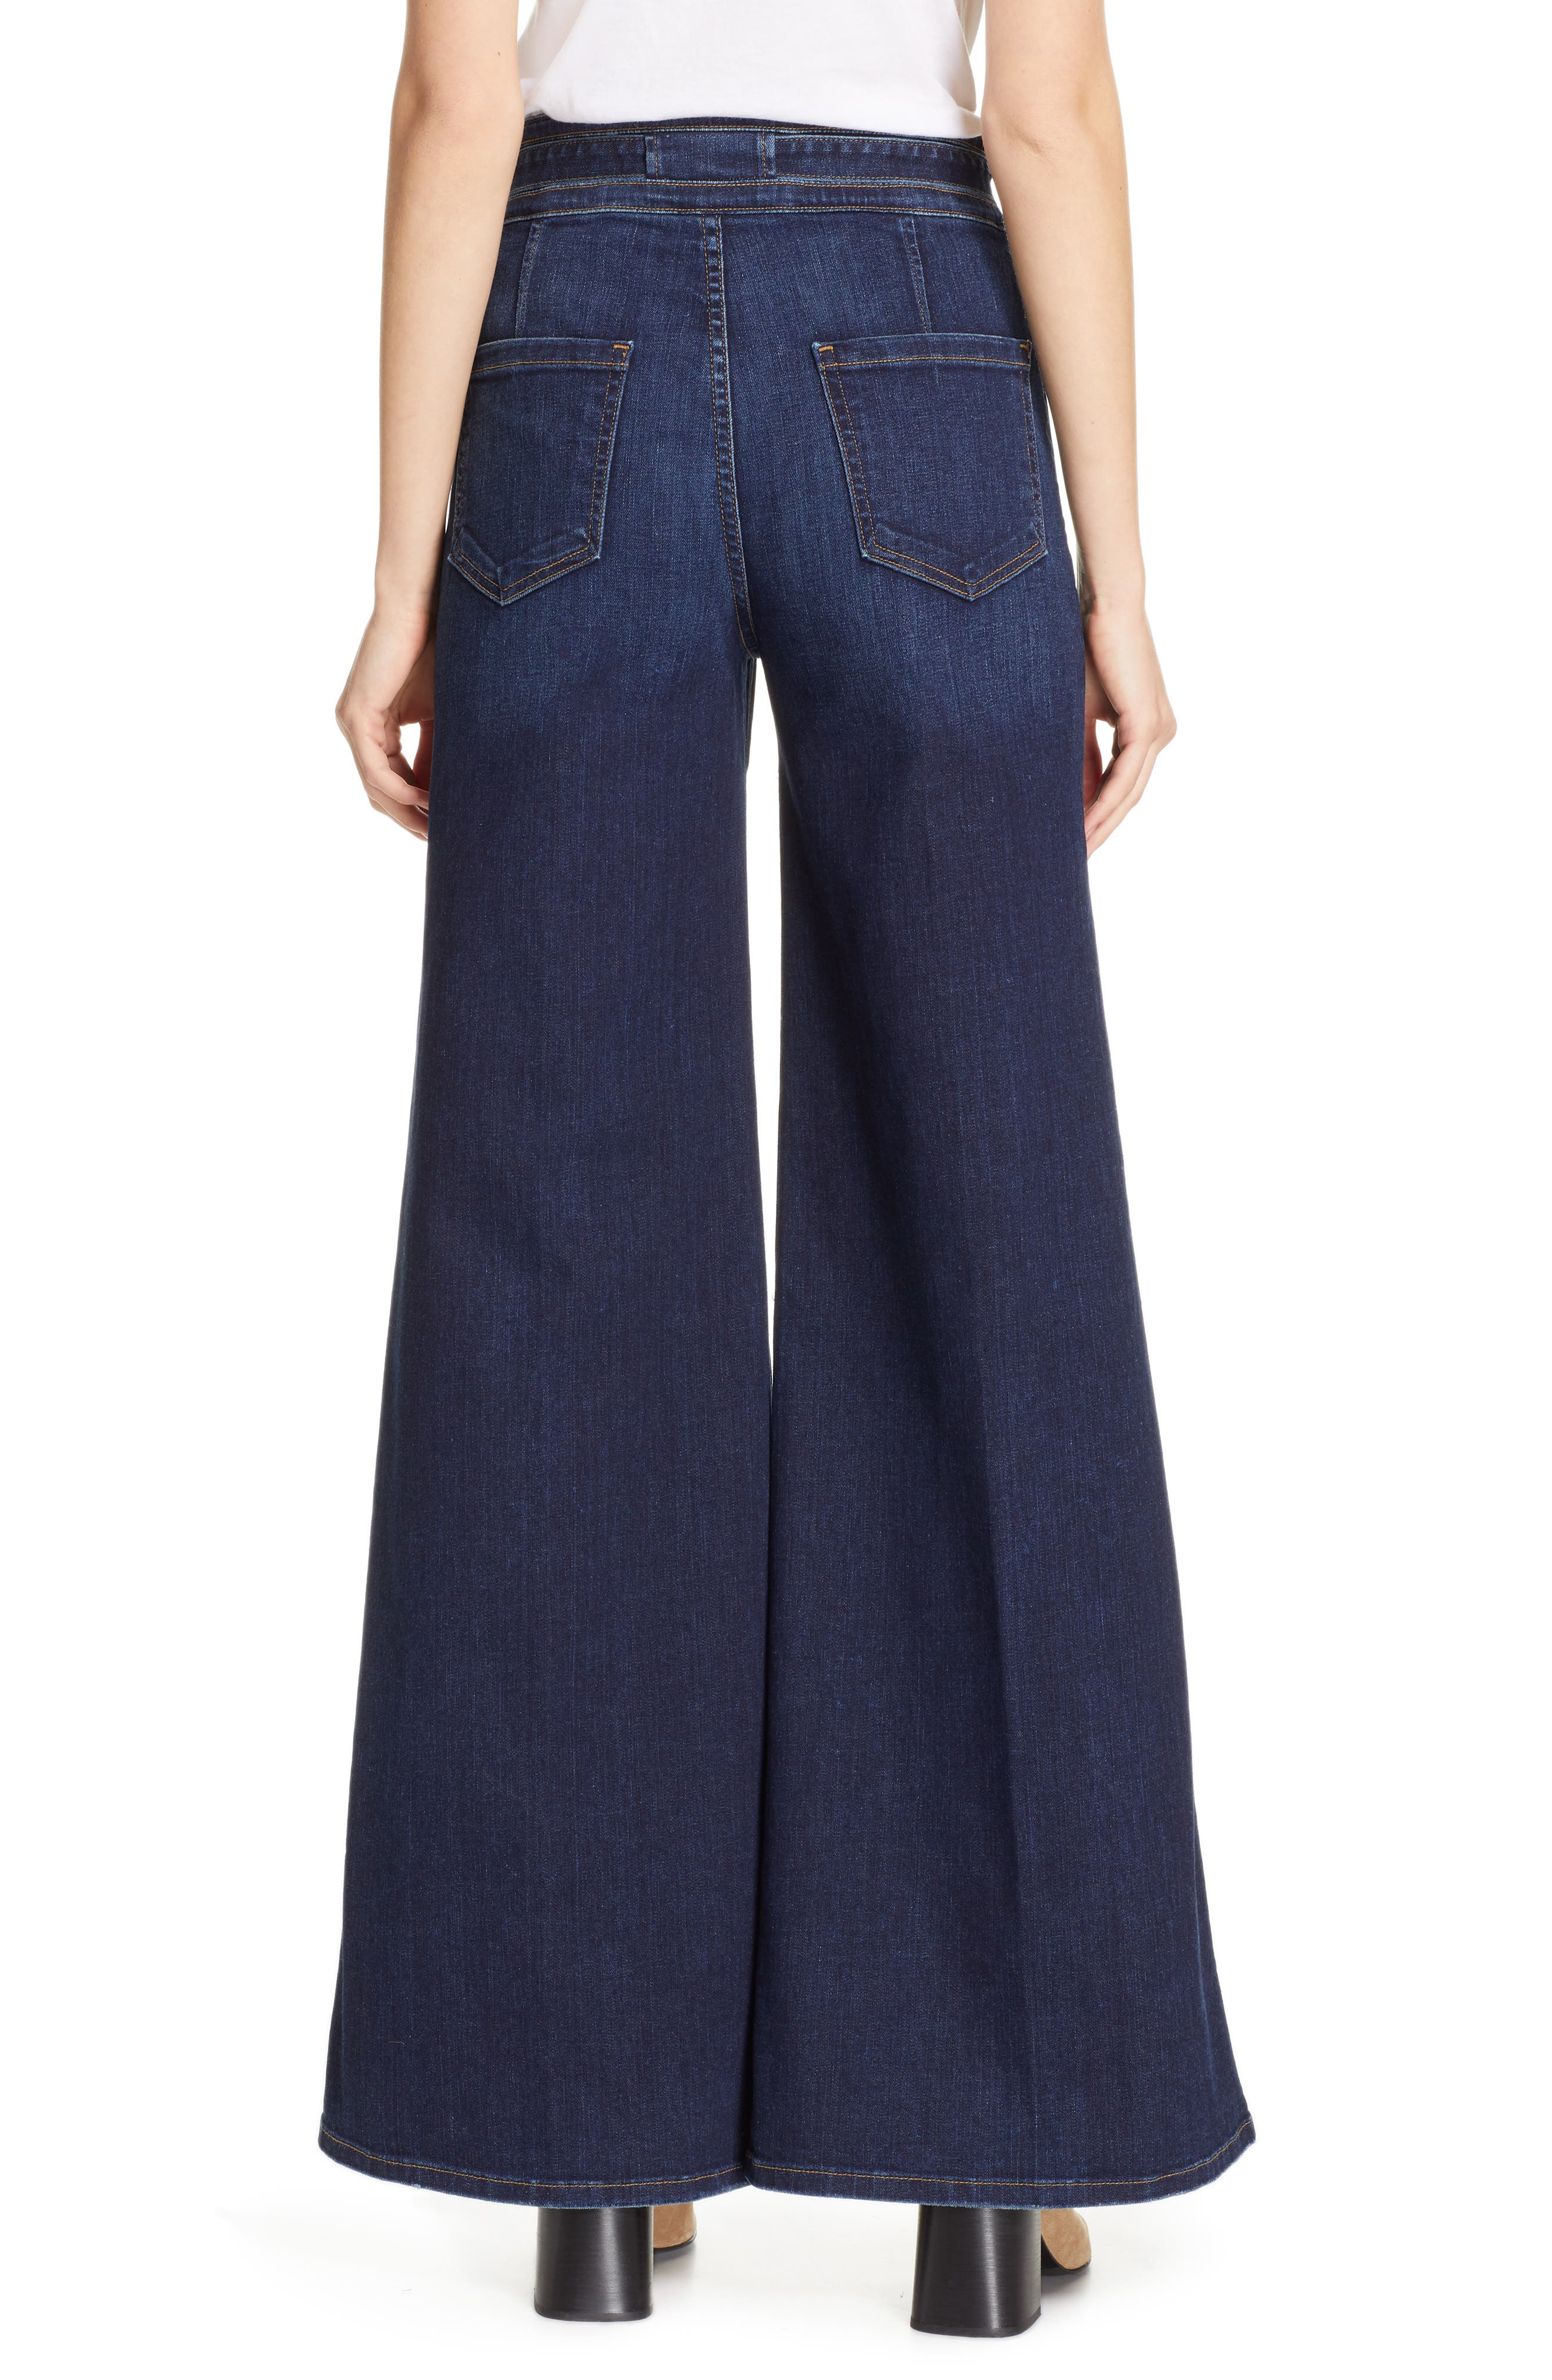 FRAME, Belted Palazzo Jeans, Alternate thumbnail 2, color, MERIBO